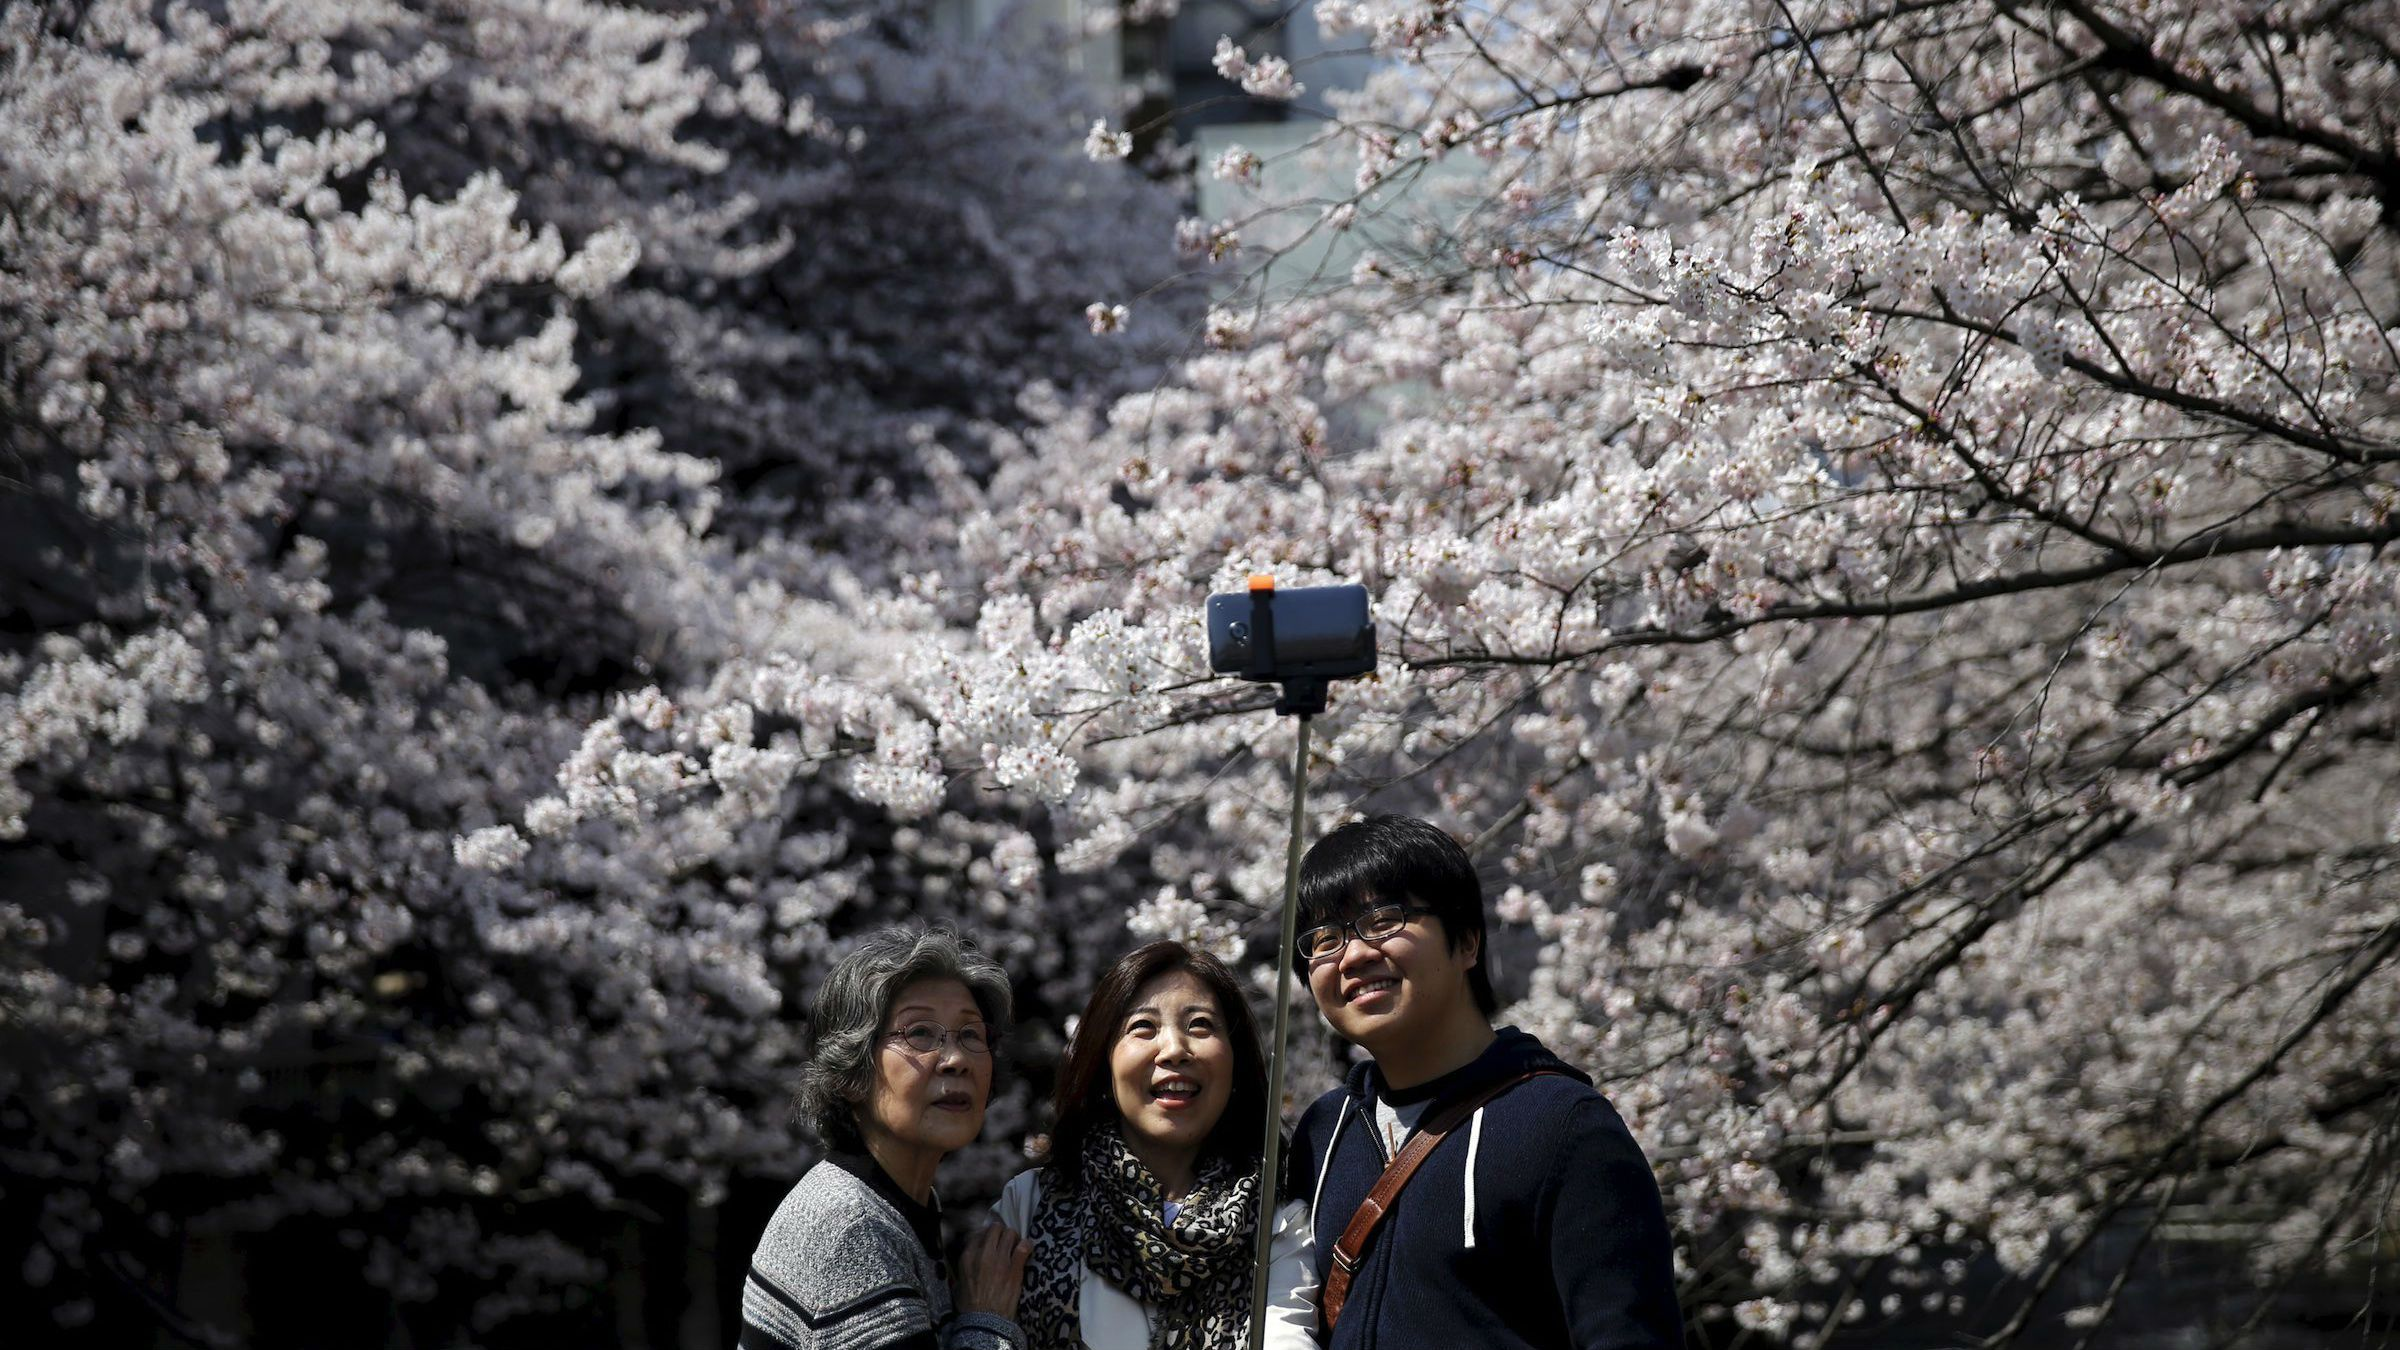 Cherry blossoms viewing season in Japan